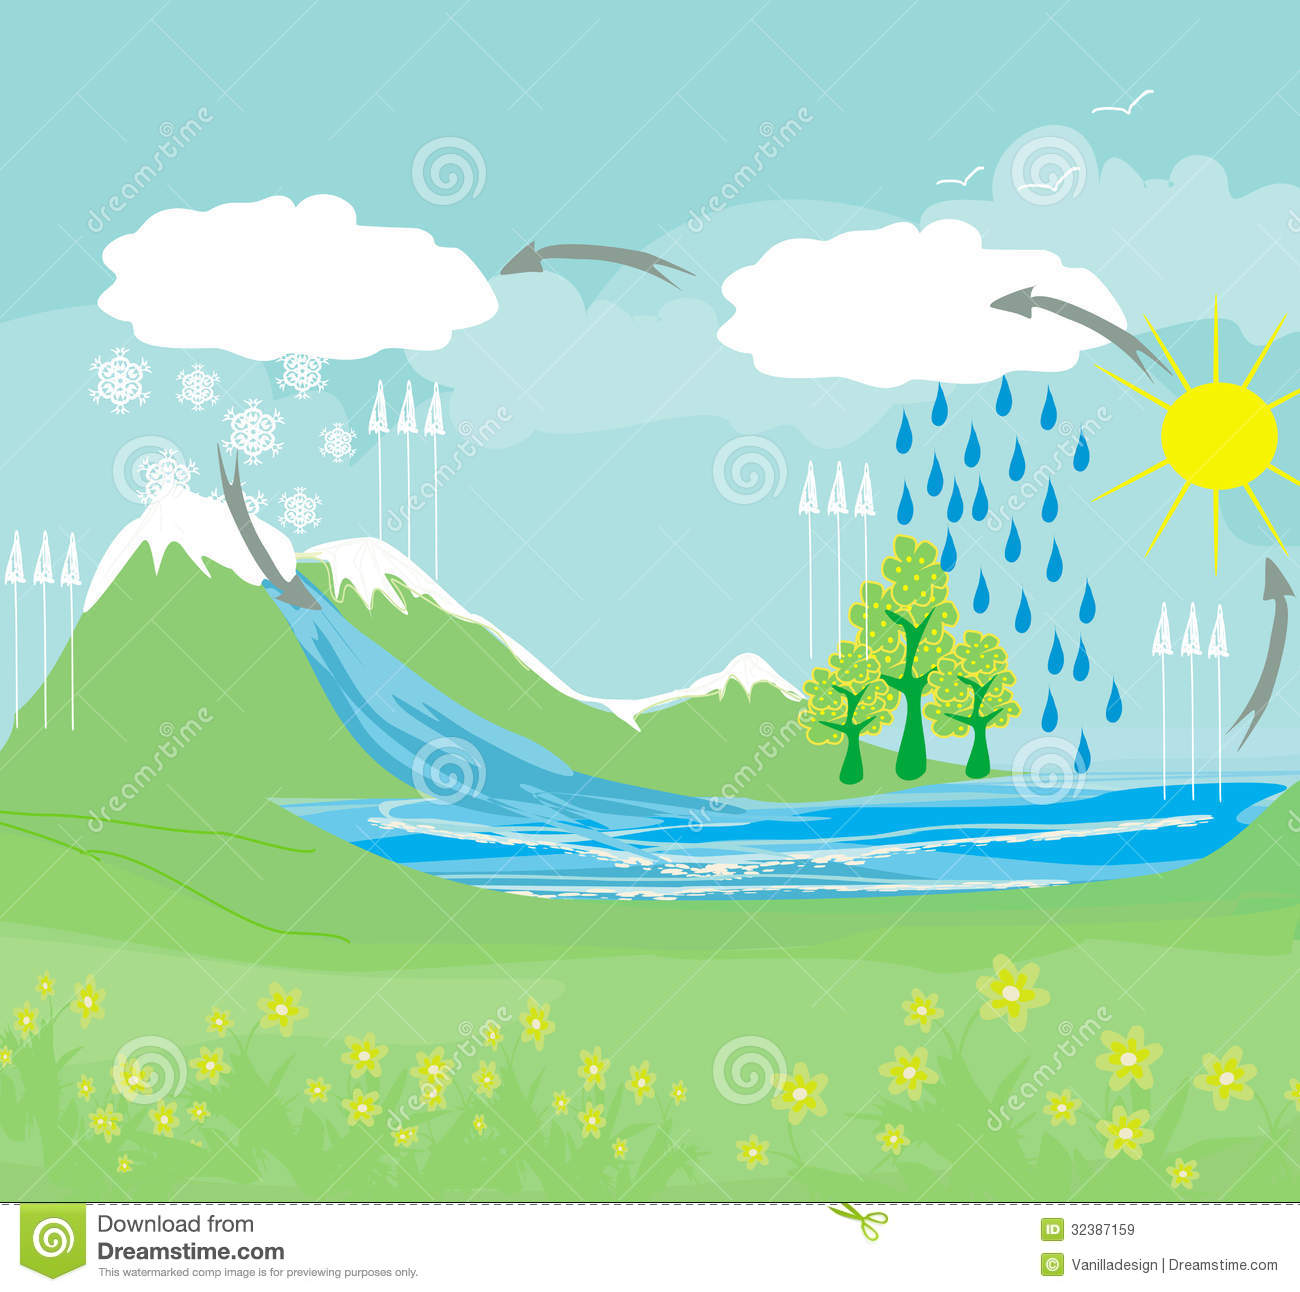 water cycle clip art - photo #46